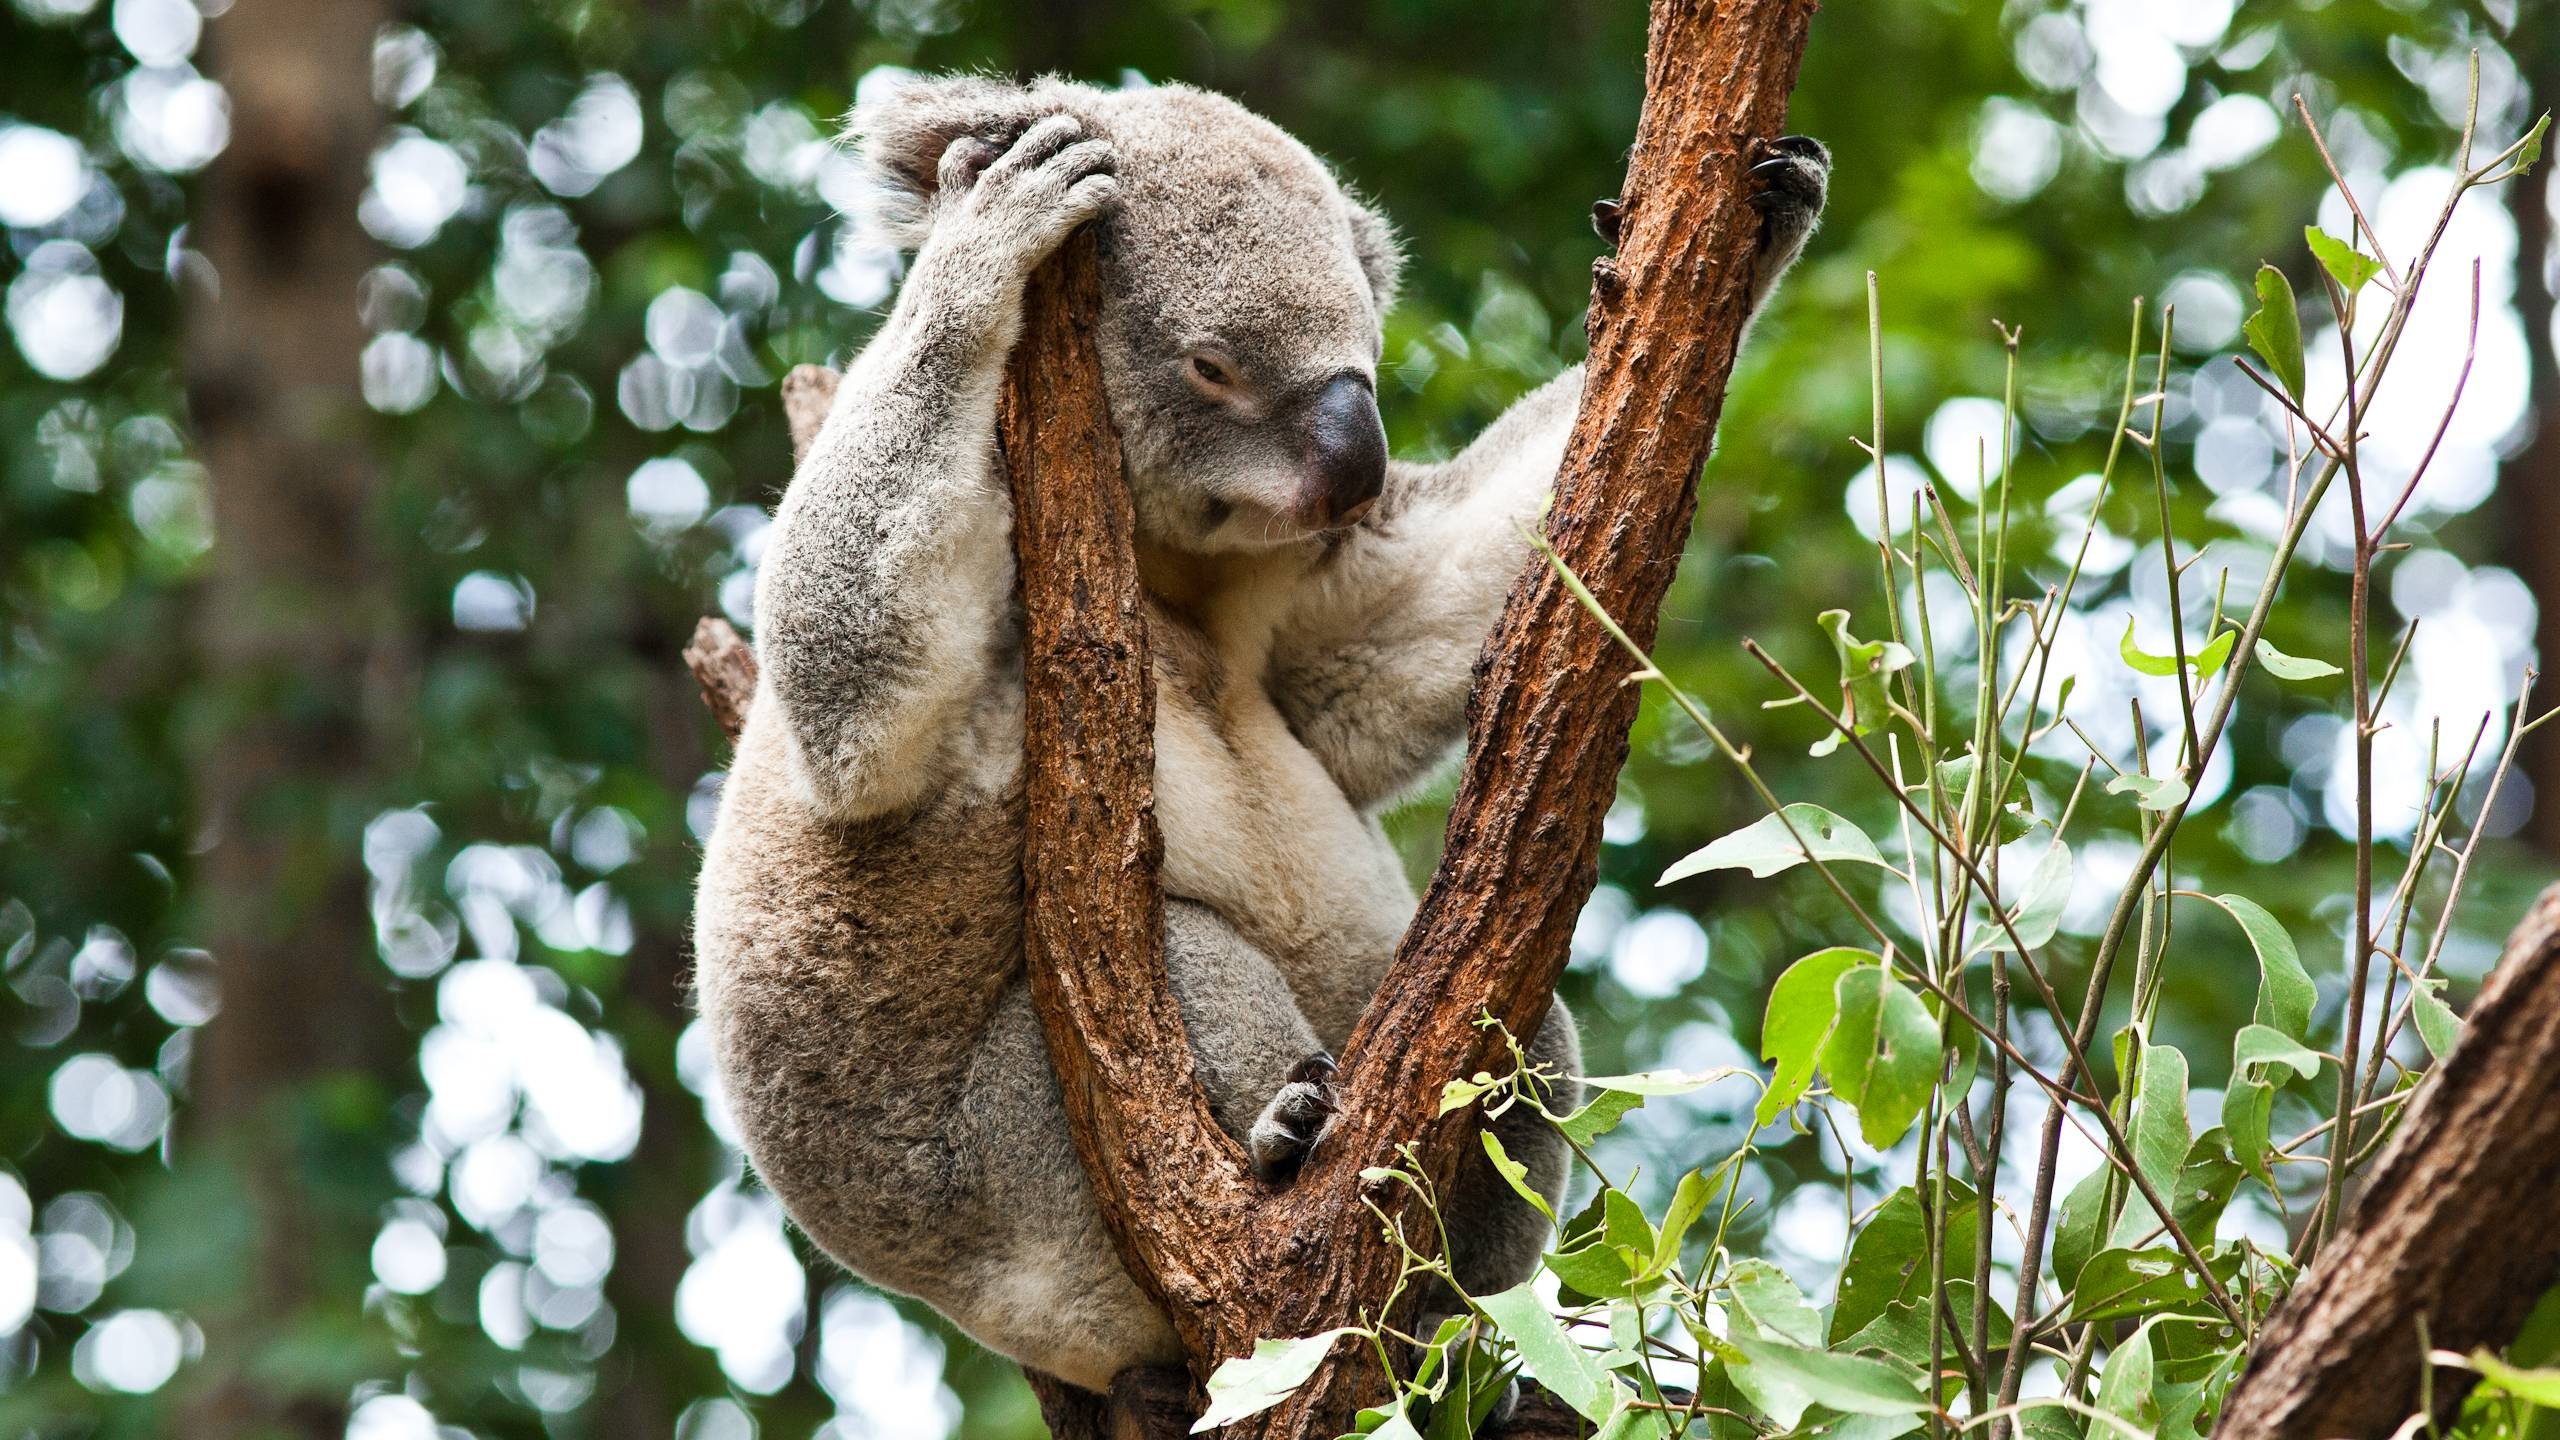 Download Koala Wallpaper 12961 2560x1440 px High Resolution ...